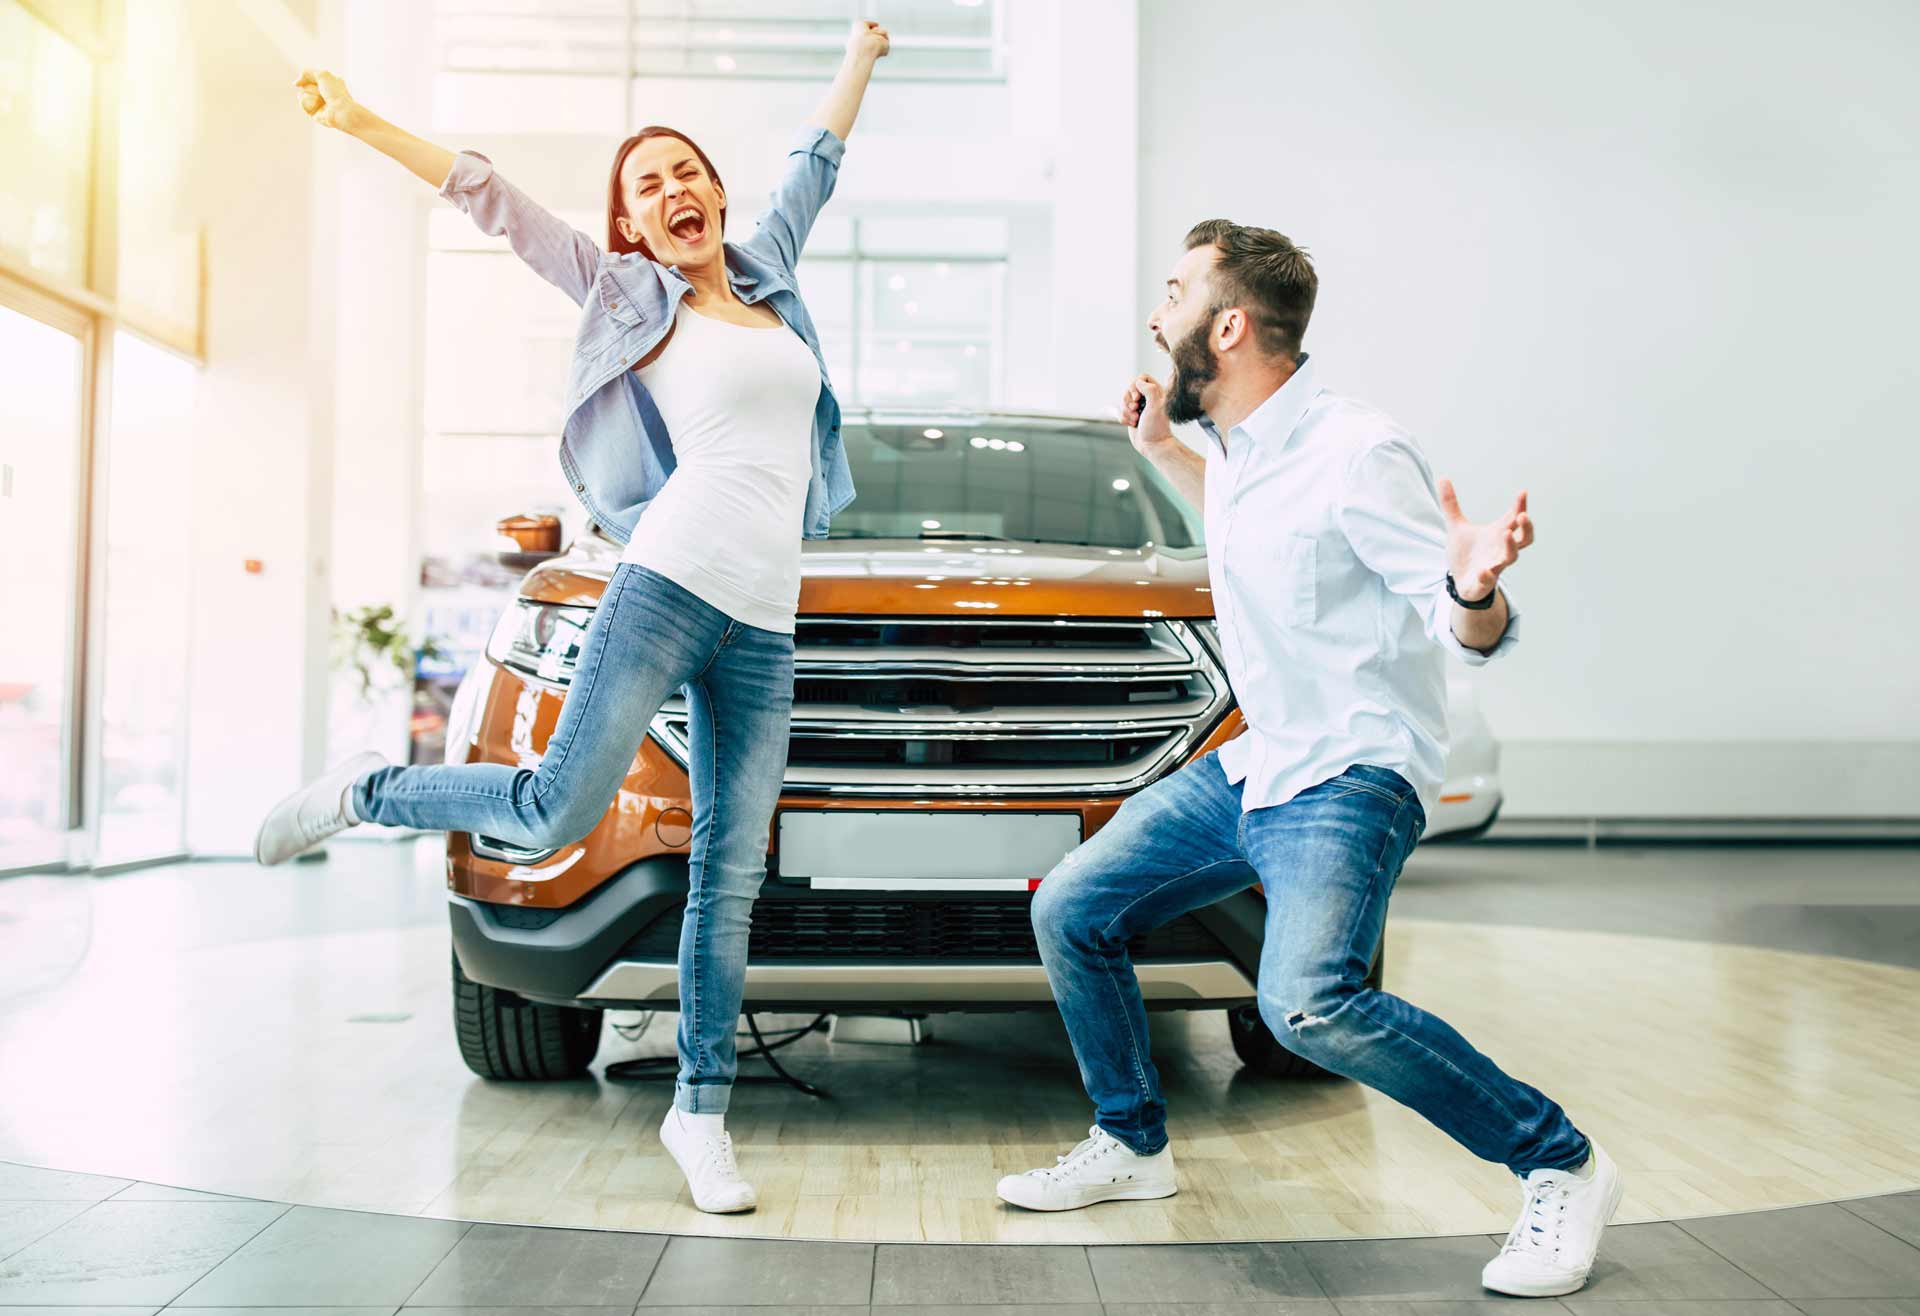 Woman and man celebrating getting a new car